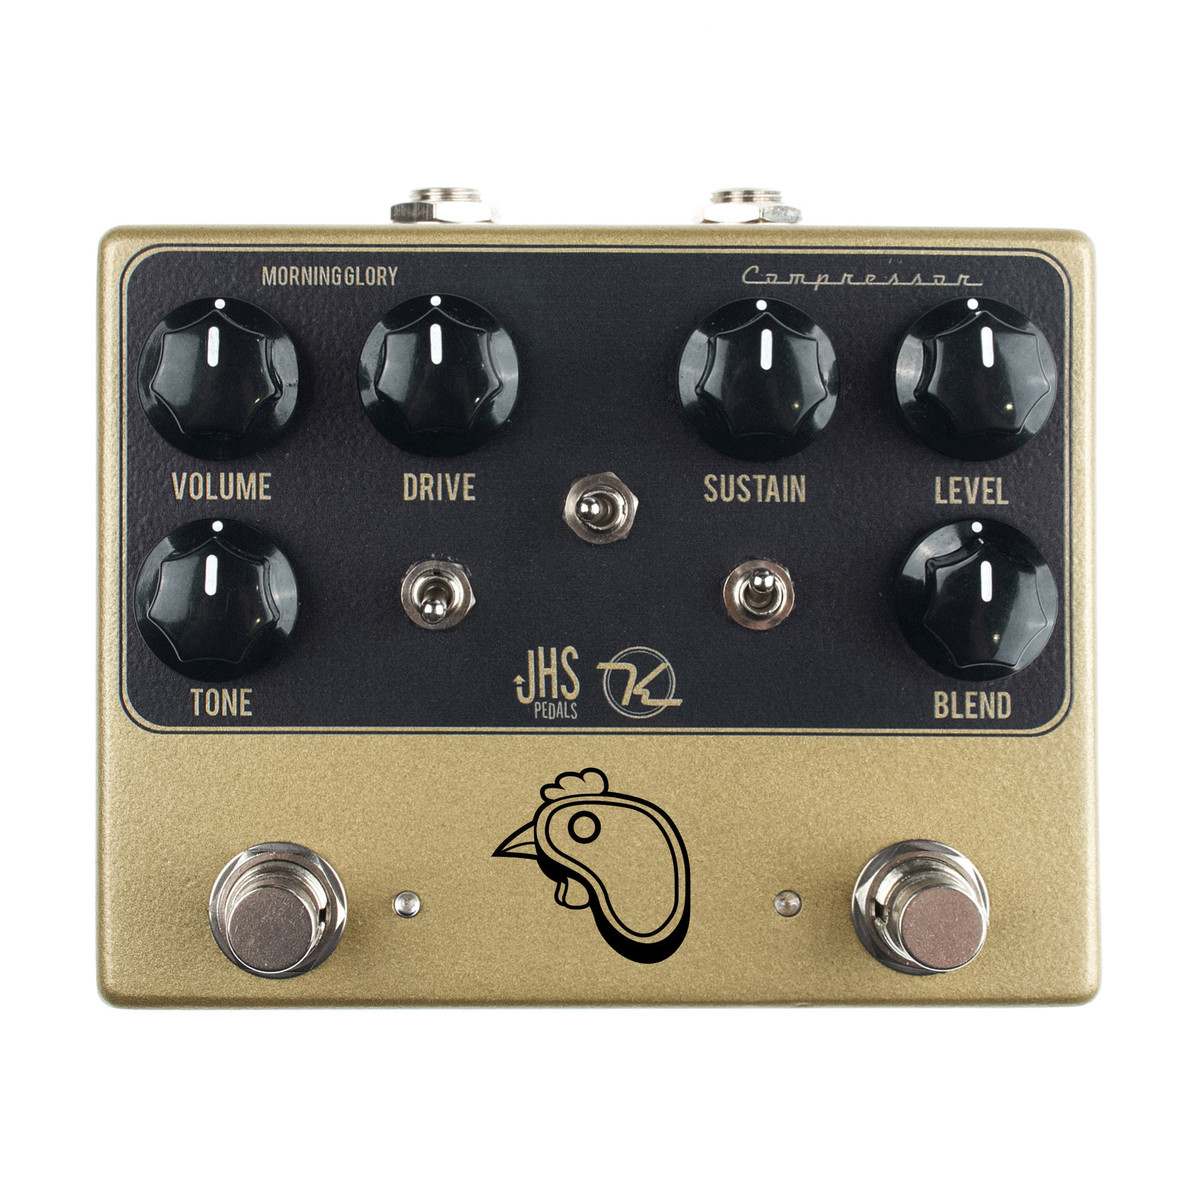 jhs pedals and keeley electronics the steak eggs b stock at gear4music. Black Bedroom Furniture Sets. Home Design Ideas